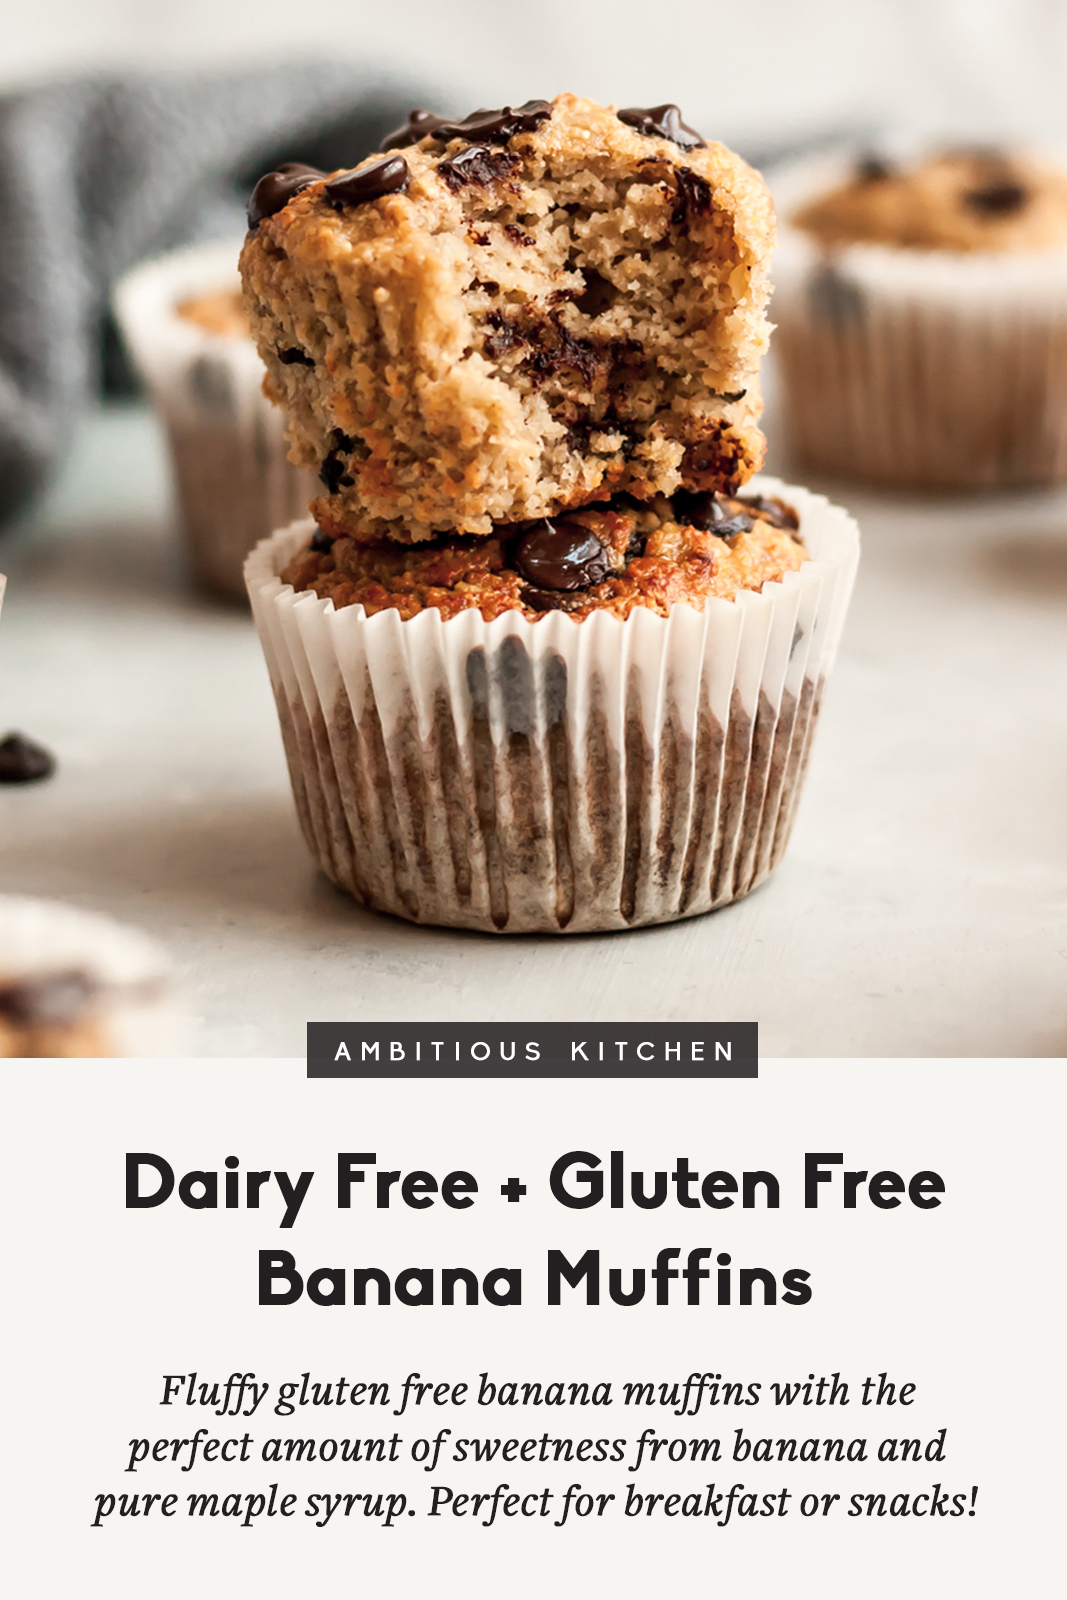 gluten free banana muffins in a stack with a title underneath